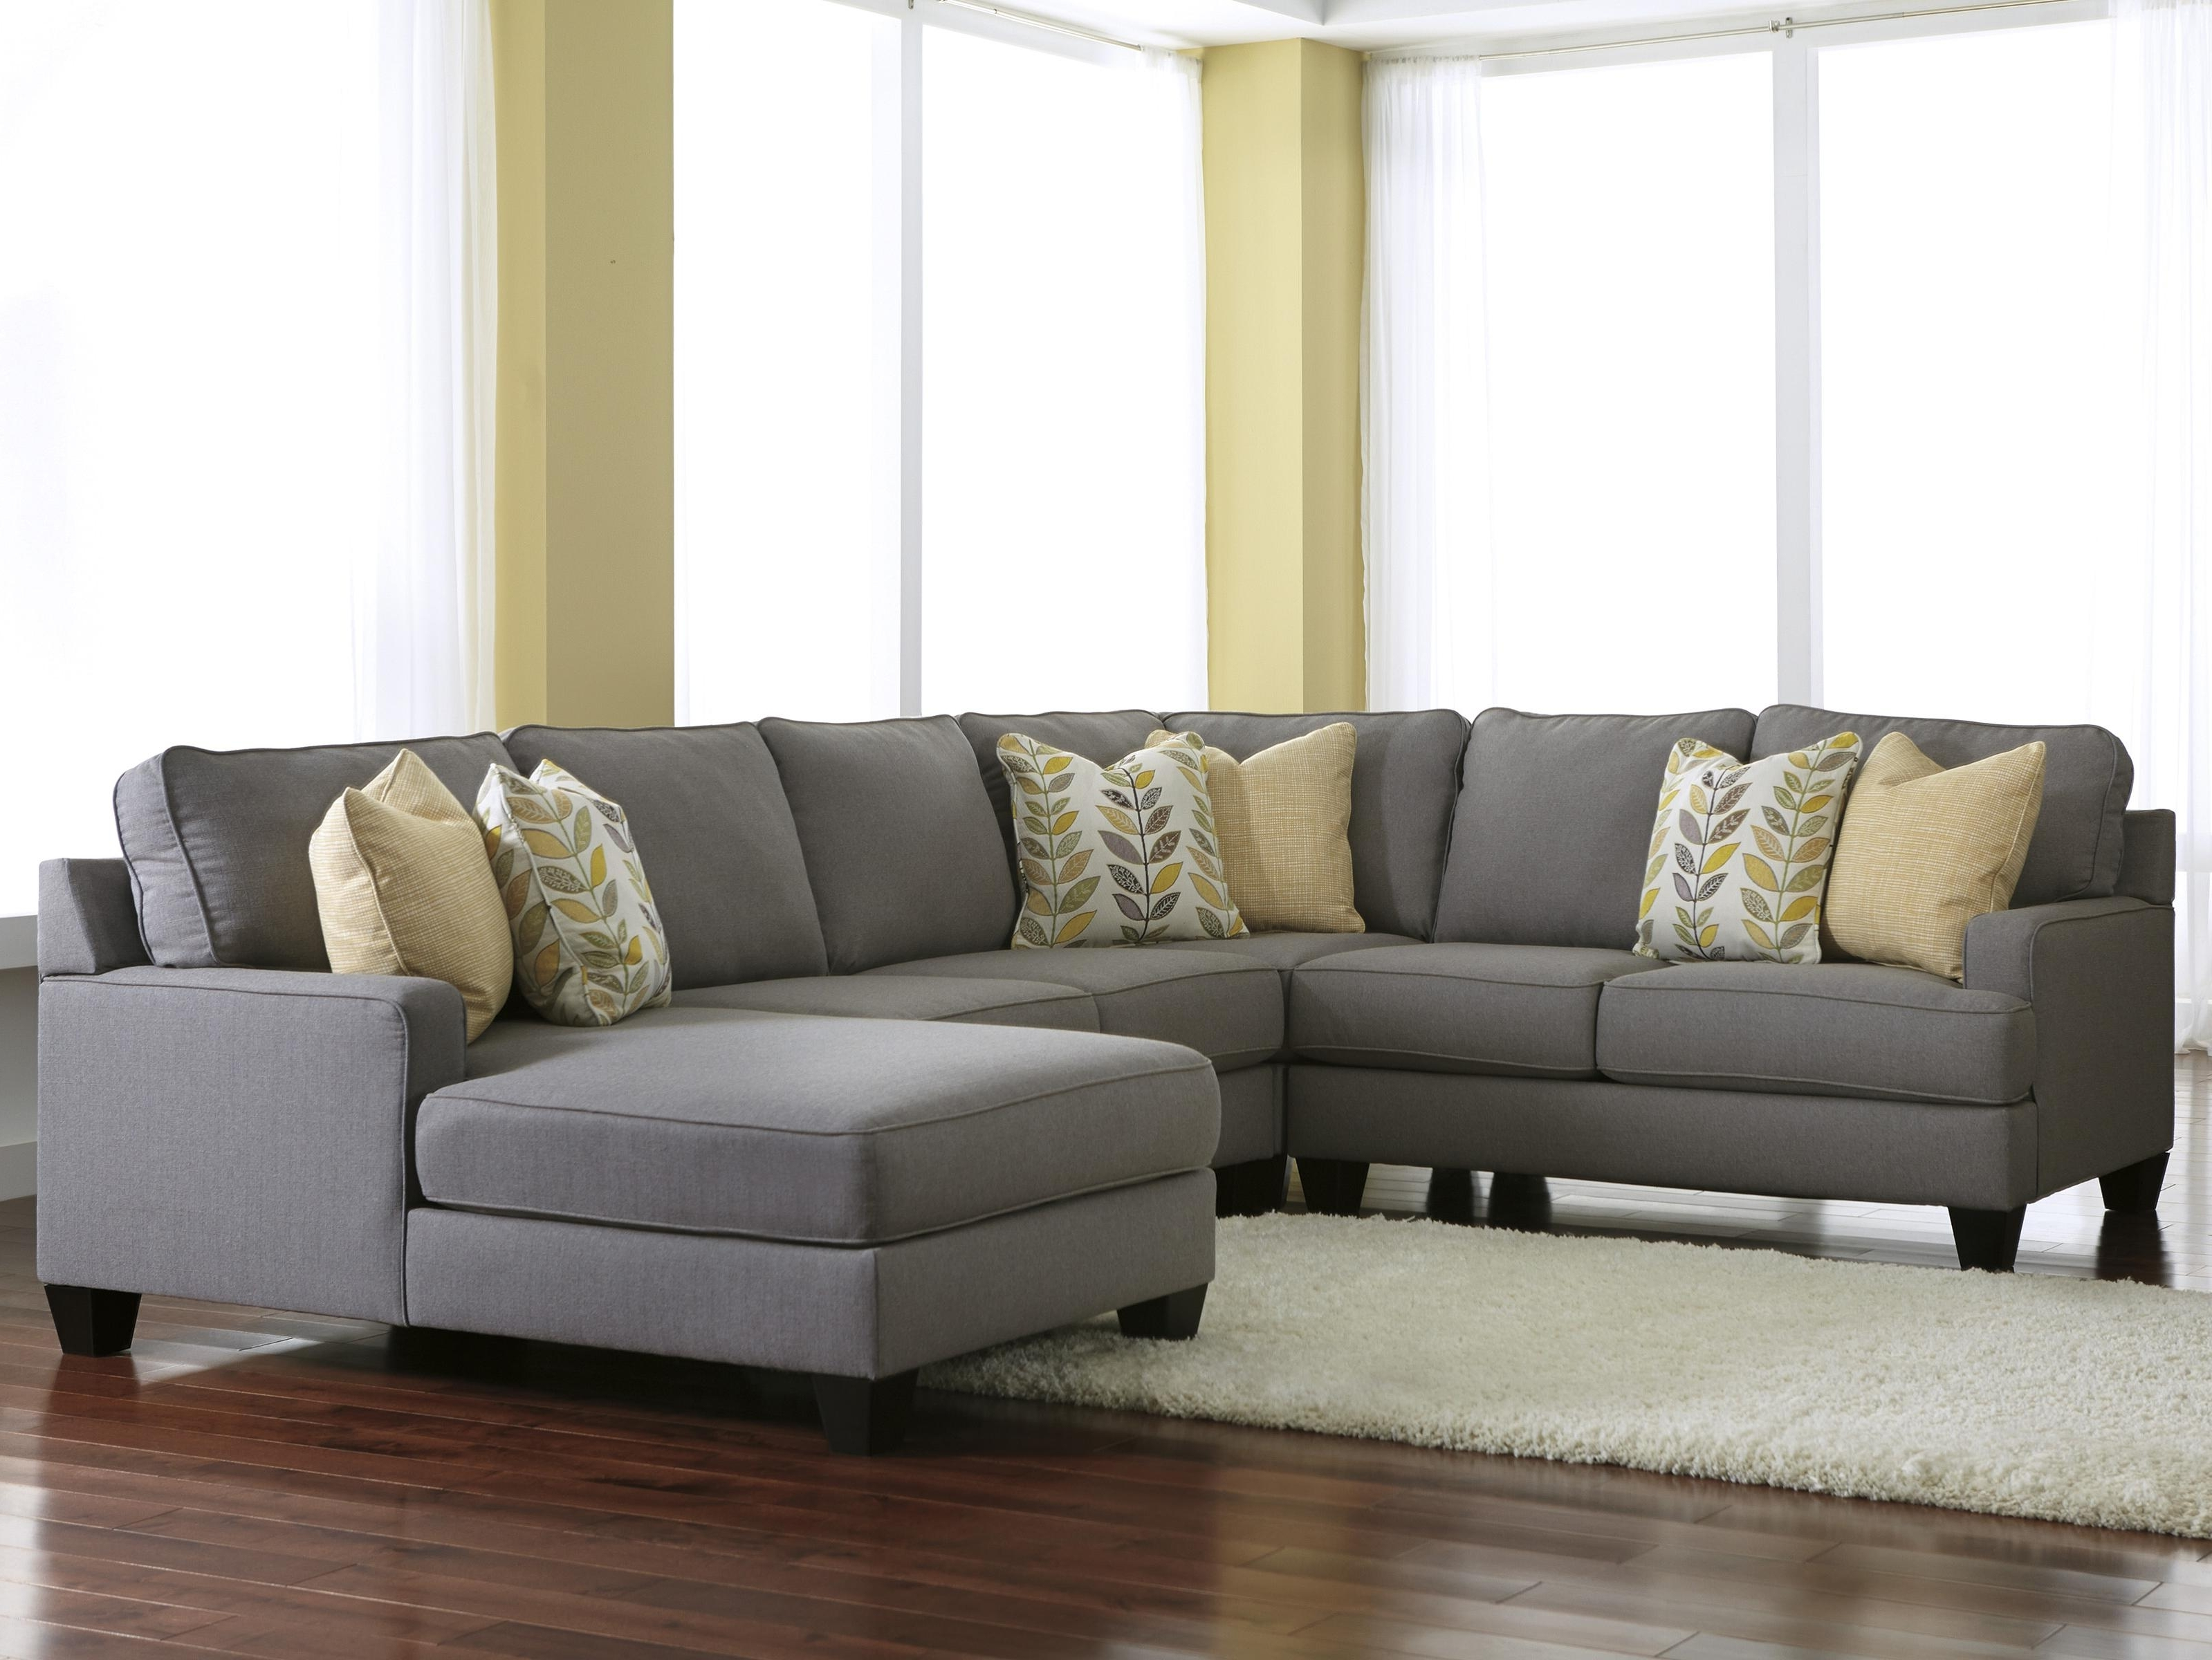 3 Piece Sectional Sofas With Chaise With Regard To Favorite Signature Designashley Chamberly – Alloy Modern 4 Piece (View 5 of 15)